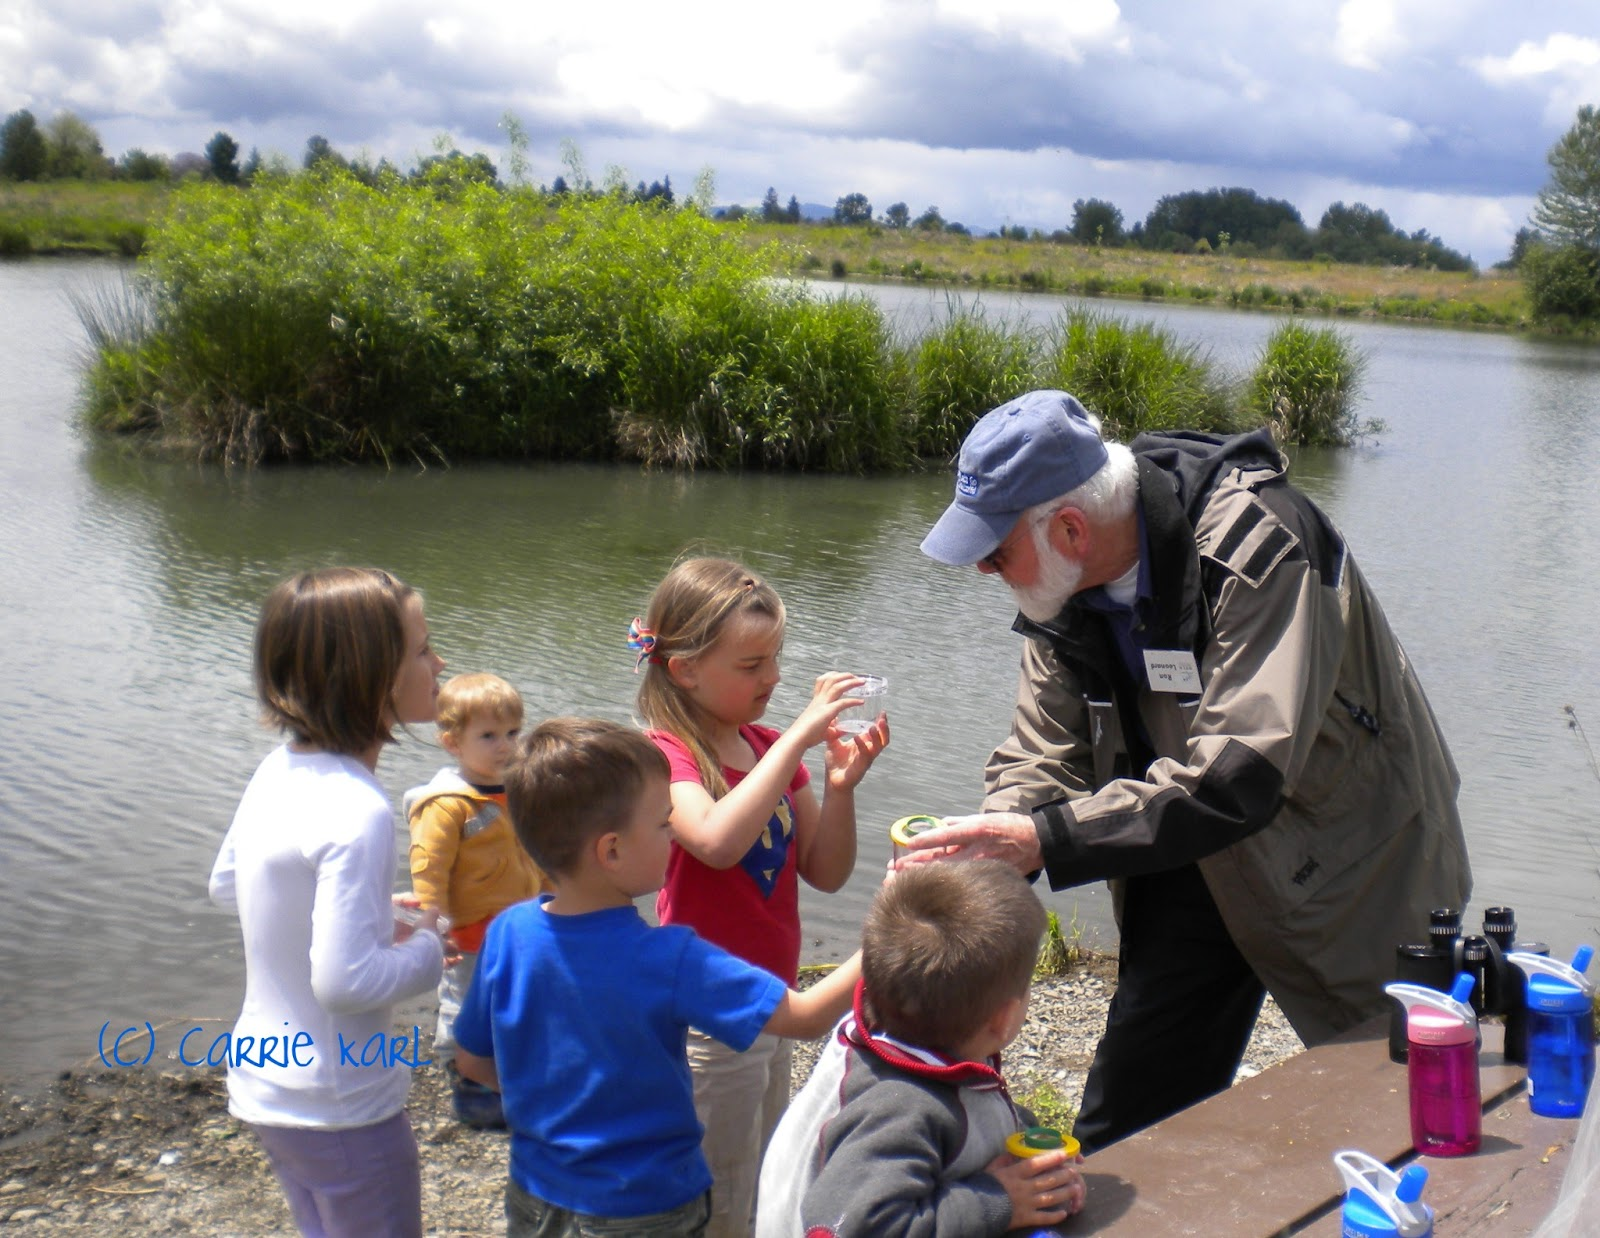 a report on visiting west eugene wetlands The family operation adopts unique technology and a spirit of innovation in a county named for ben franklin.